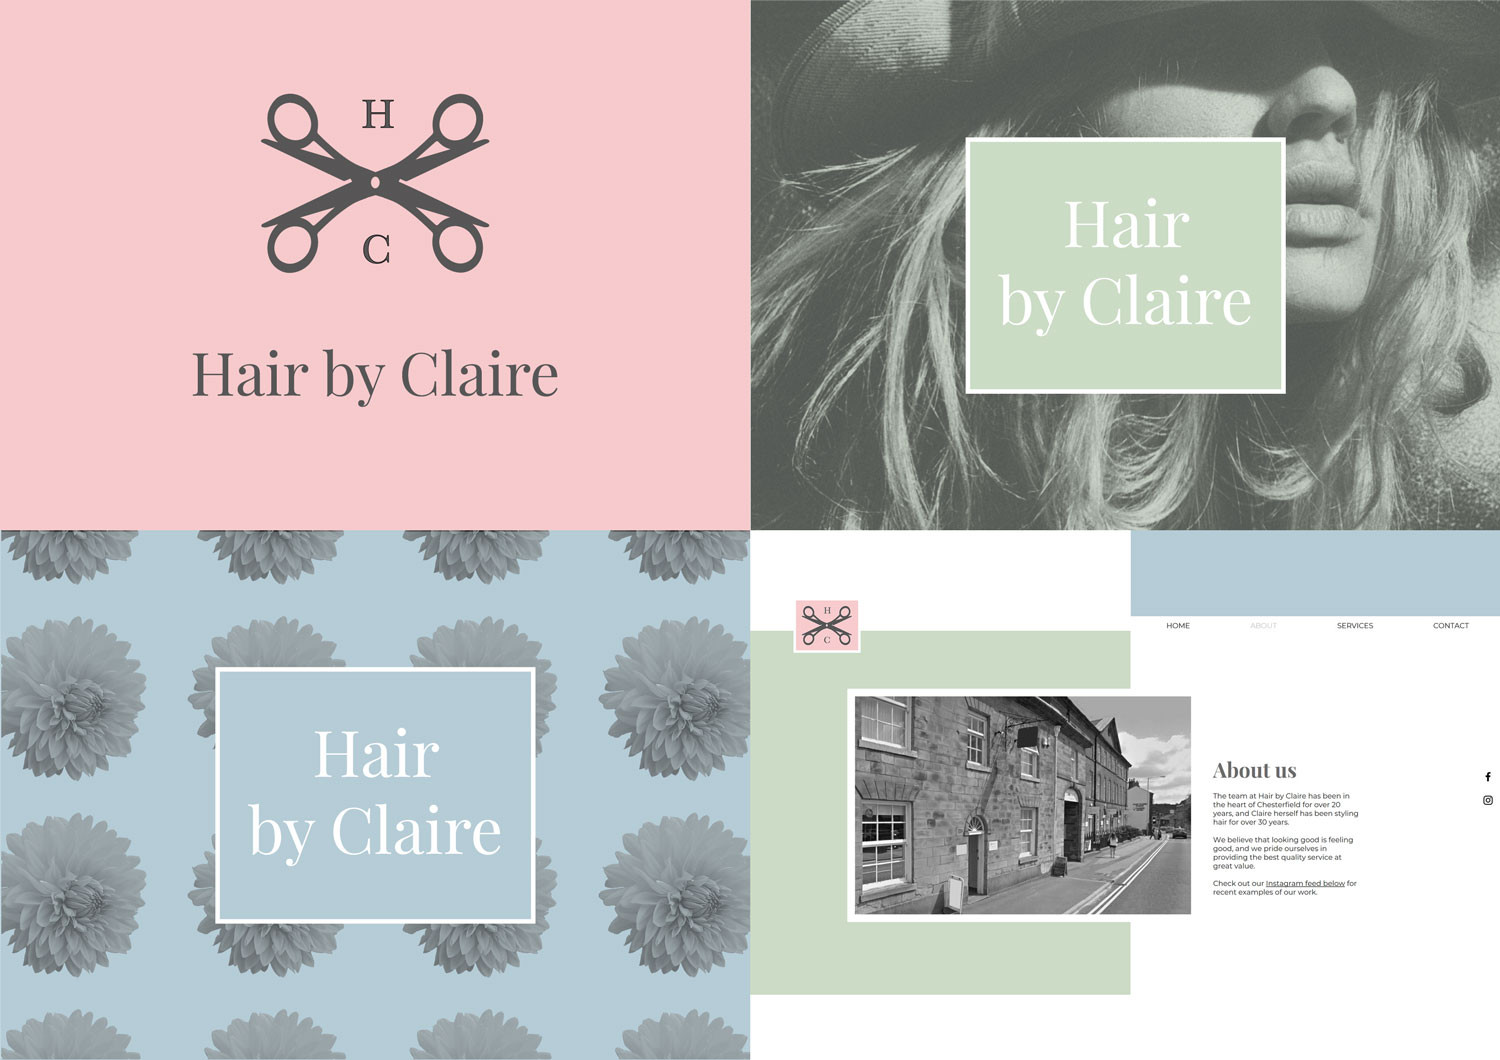 Hair-by-Claire-Brand-Images.jpg